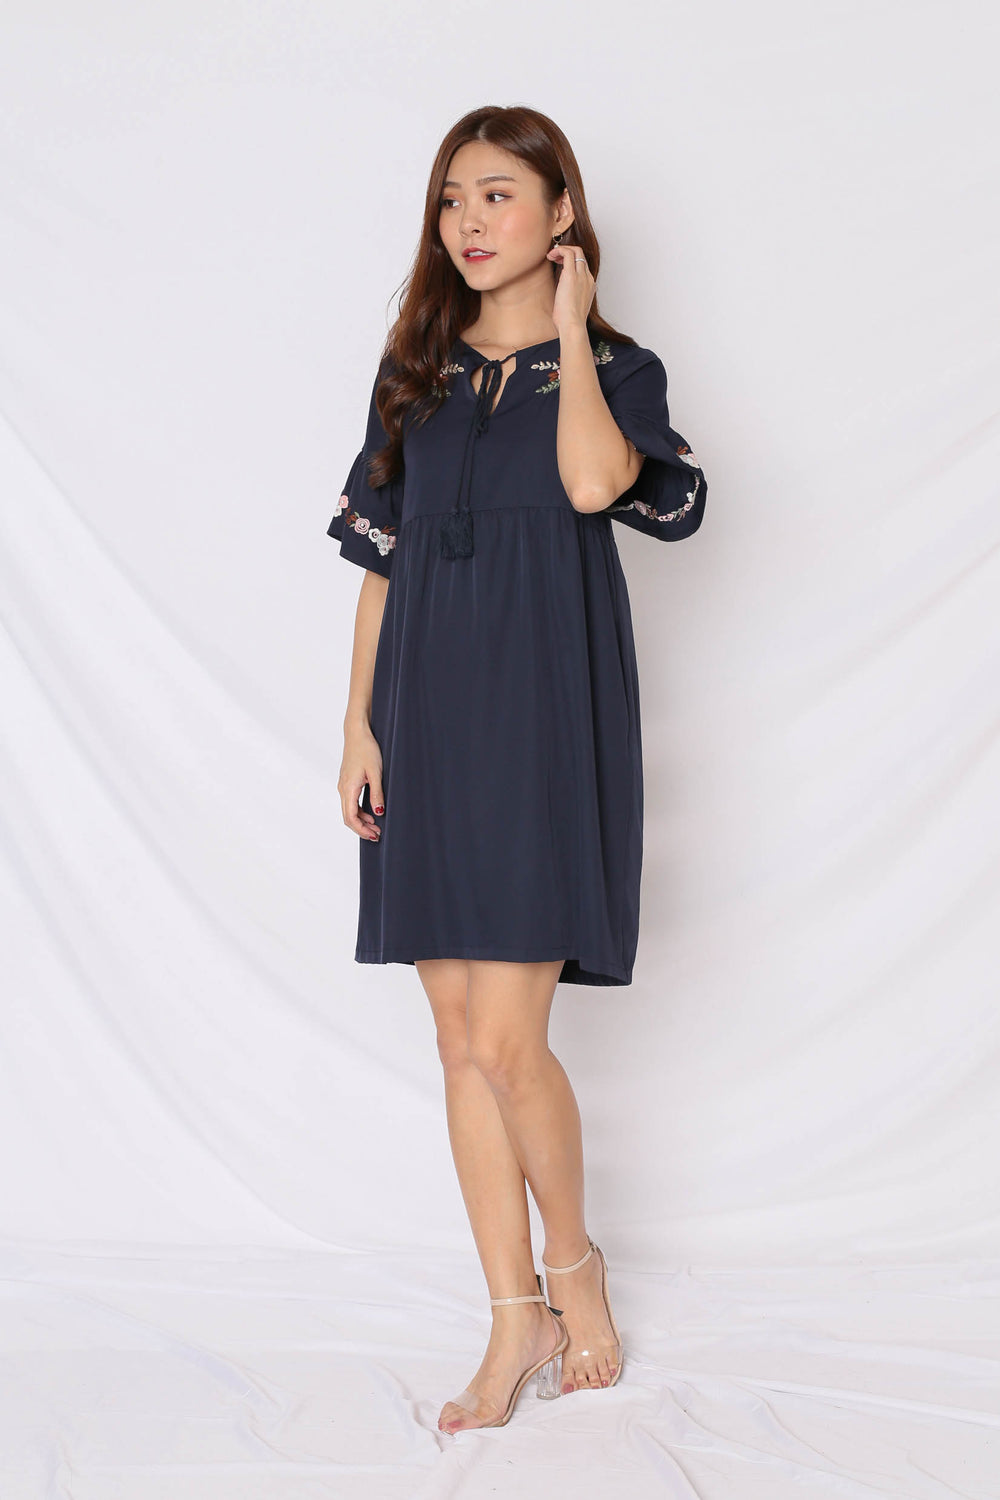 (PREMIUM) GYPSY EMBROIDERY TASSEL DRESS IN NAVY